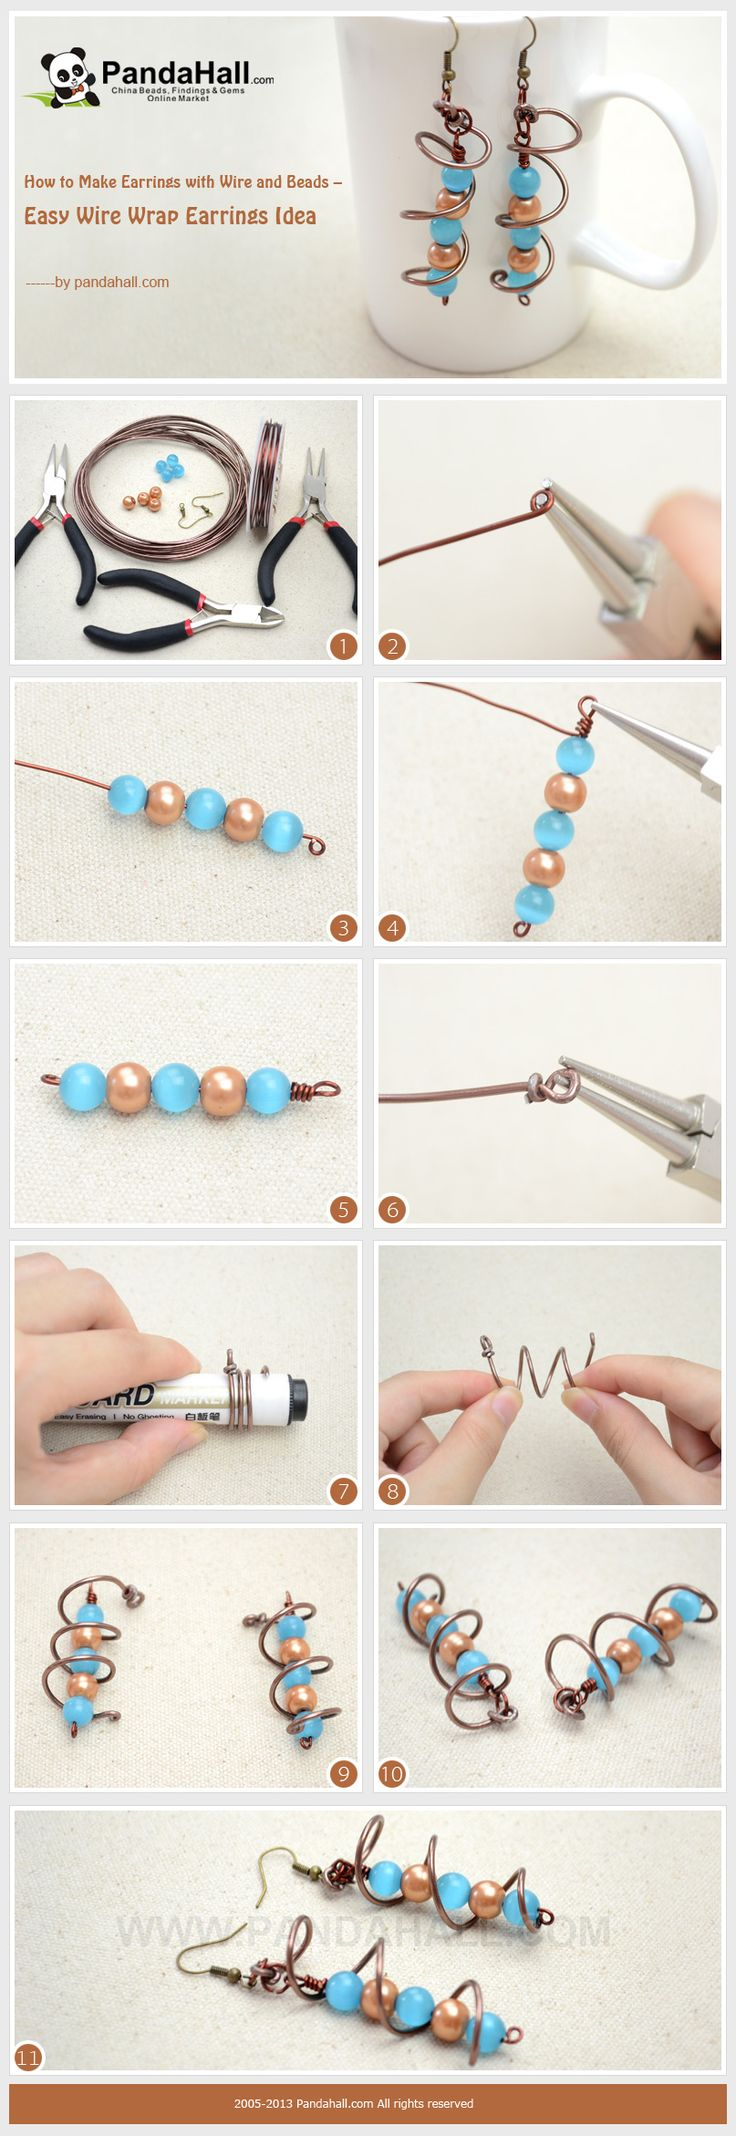 126 best craft-jewelry-ear images on Pinterest | Diy jewelry making ...